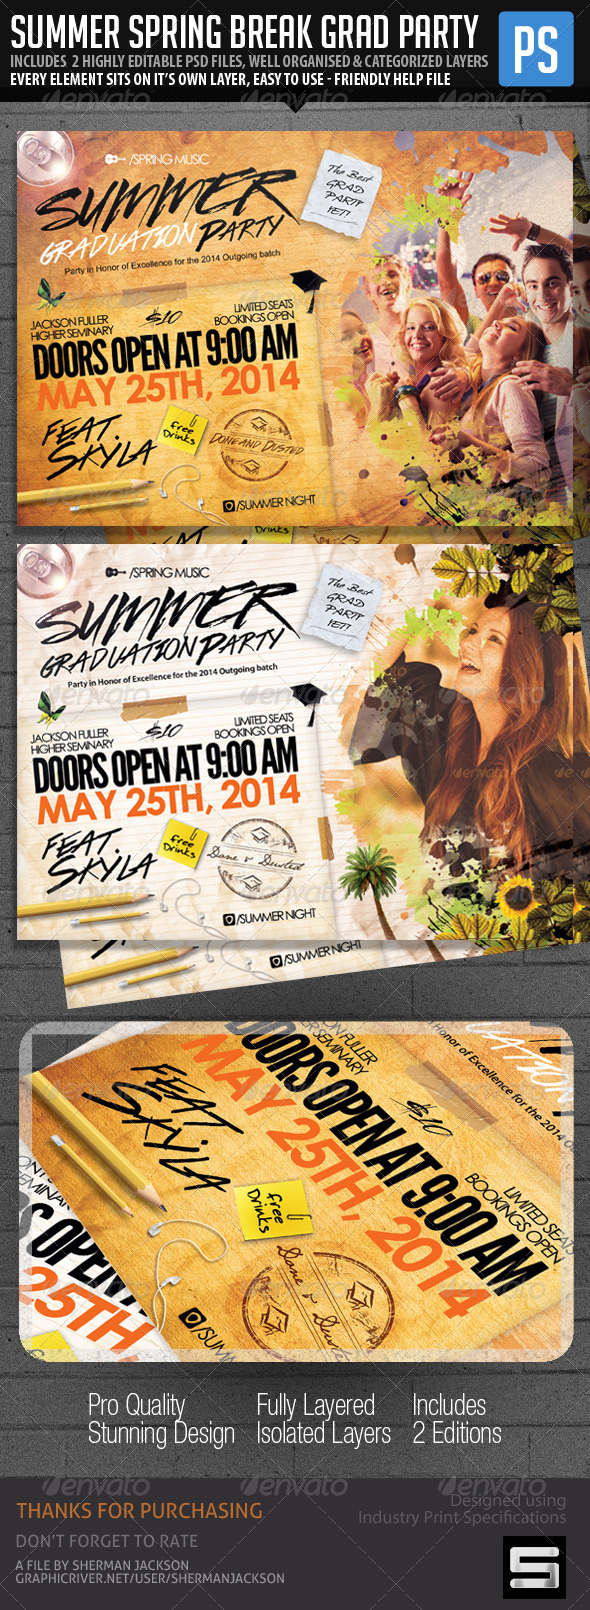 GraphicRiver Summer Graduation & Spring Break Party Flyer 7620878